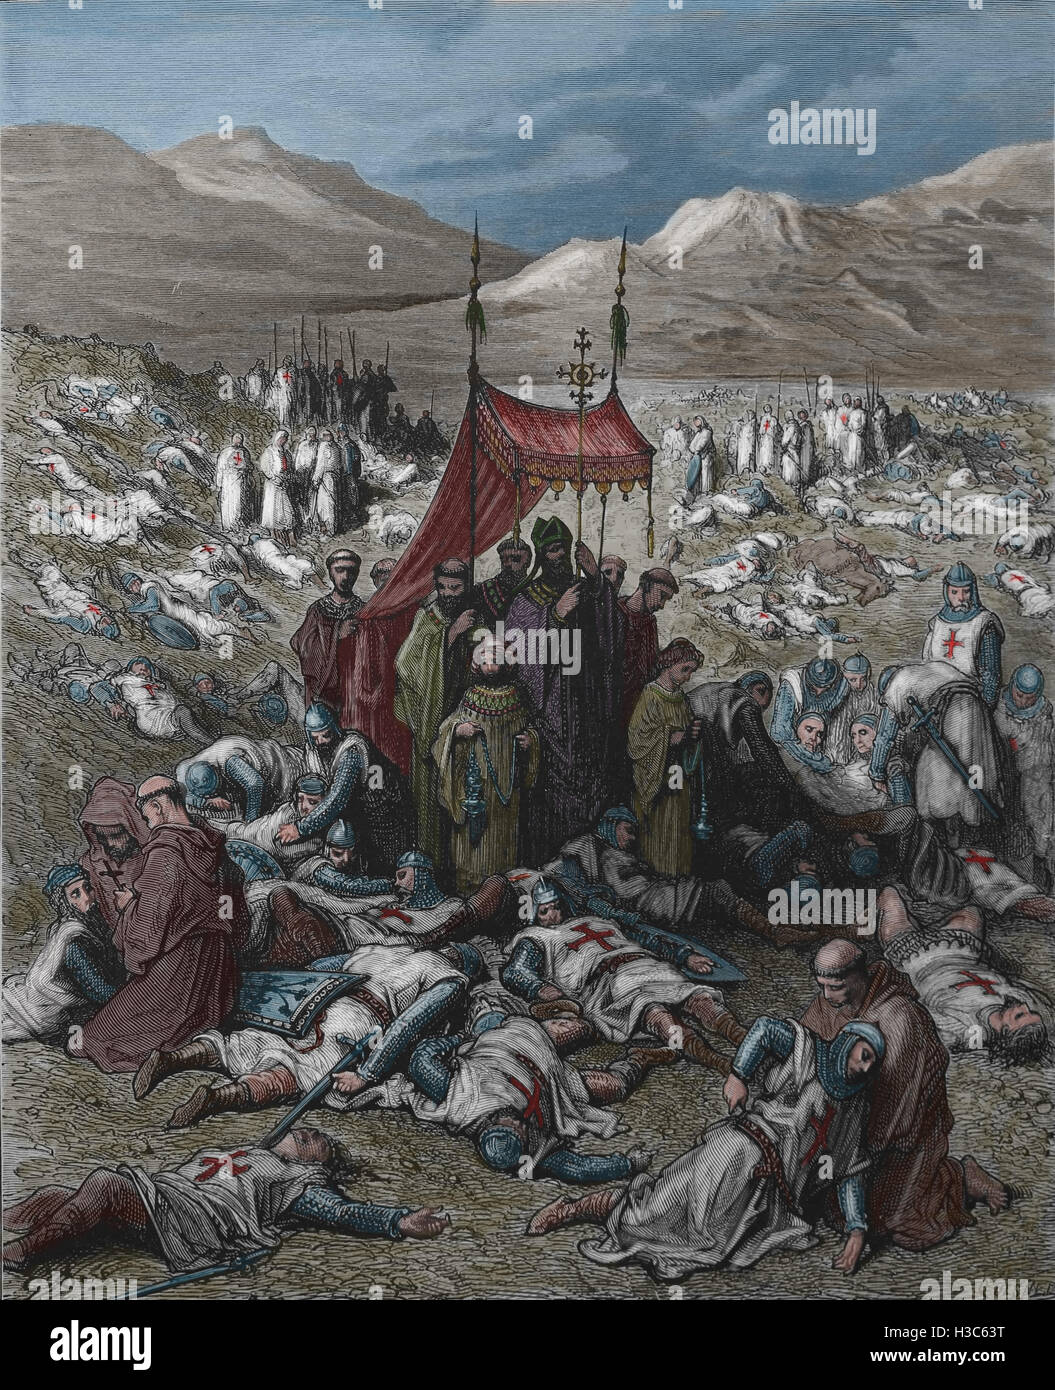 First Crusade. Burying the Dead After the Battle of Dorylaeum, Anatolia. Engraving by Dore, 19th century. - Stock Image